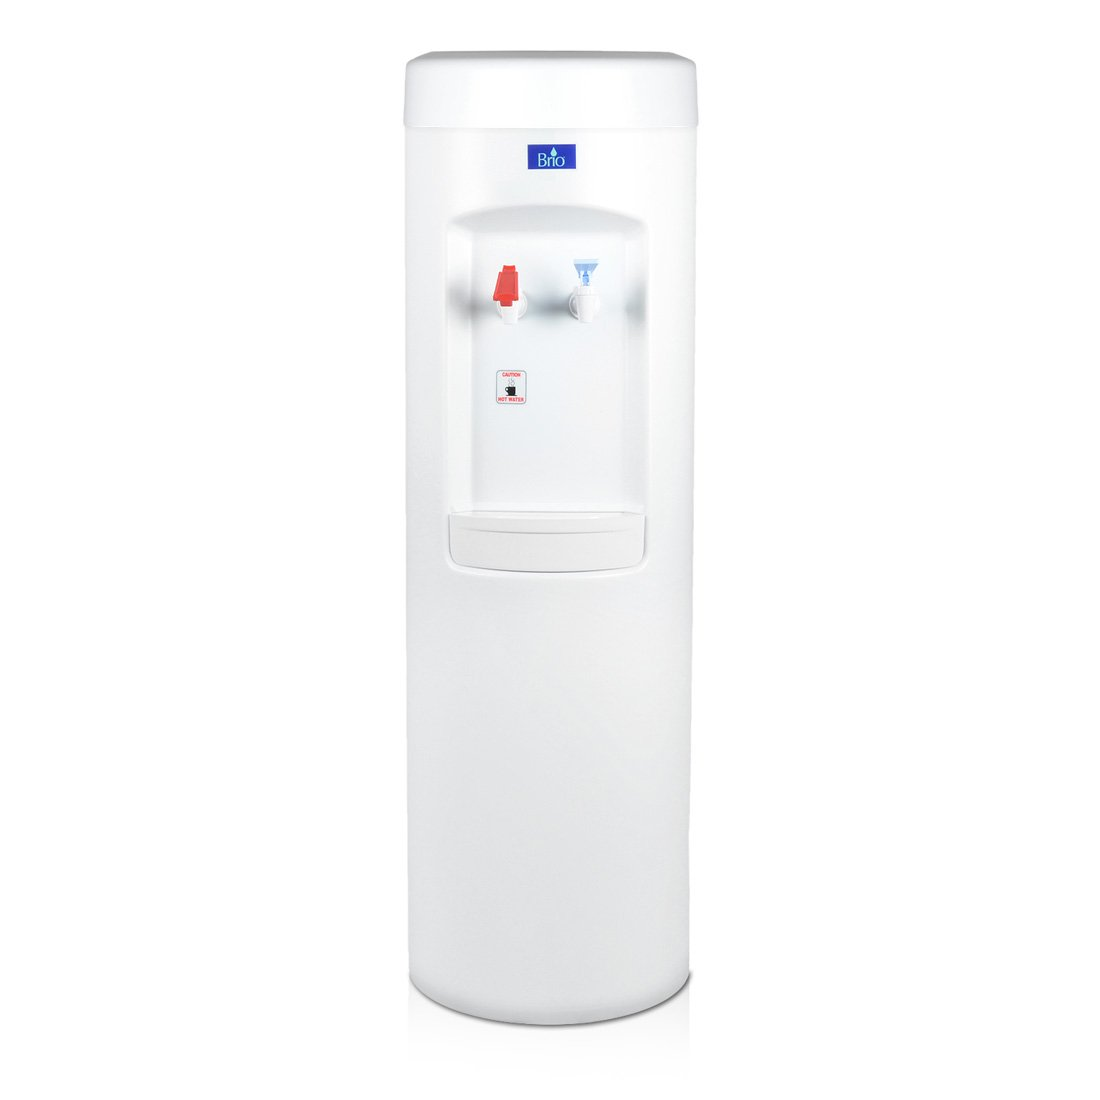 White BottleLess Water Purification Cooler with 1,500-Gallon capacity water filtration and installation kit. From BottleLess Direct (Model: BDX1-WK). Dispenses Hot & Cold water. (Also available in black)